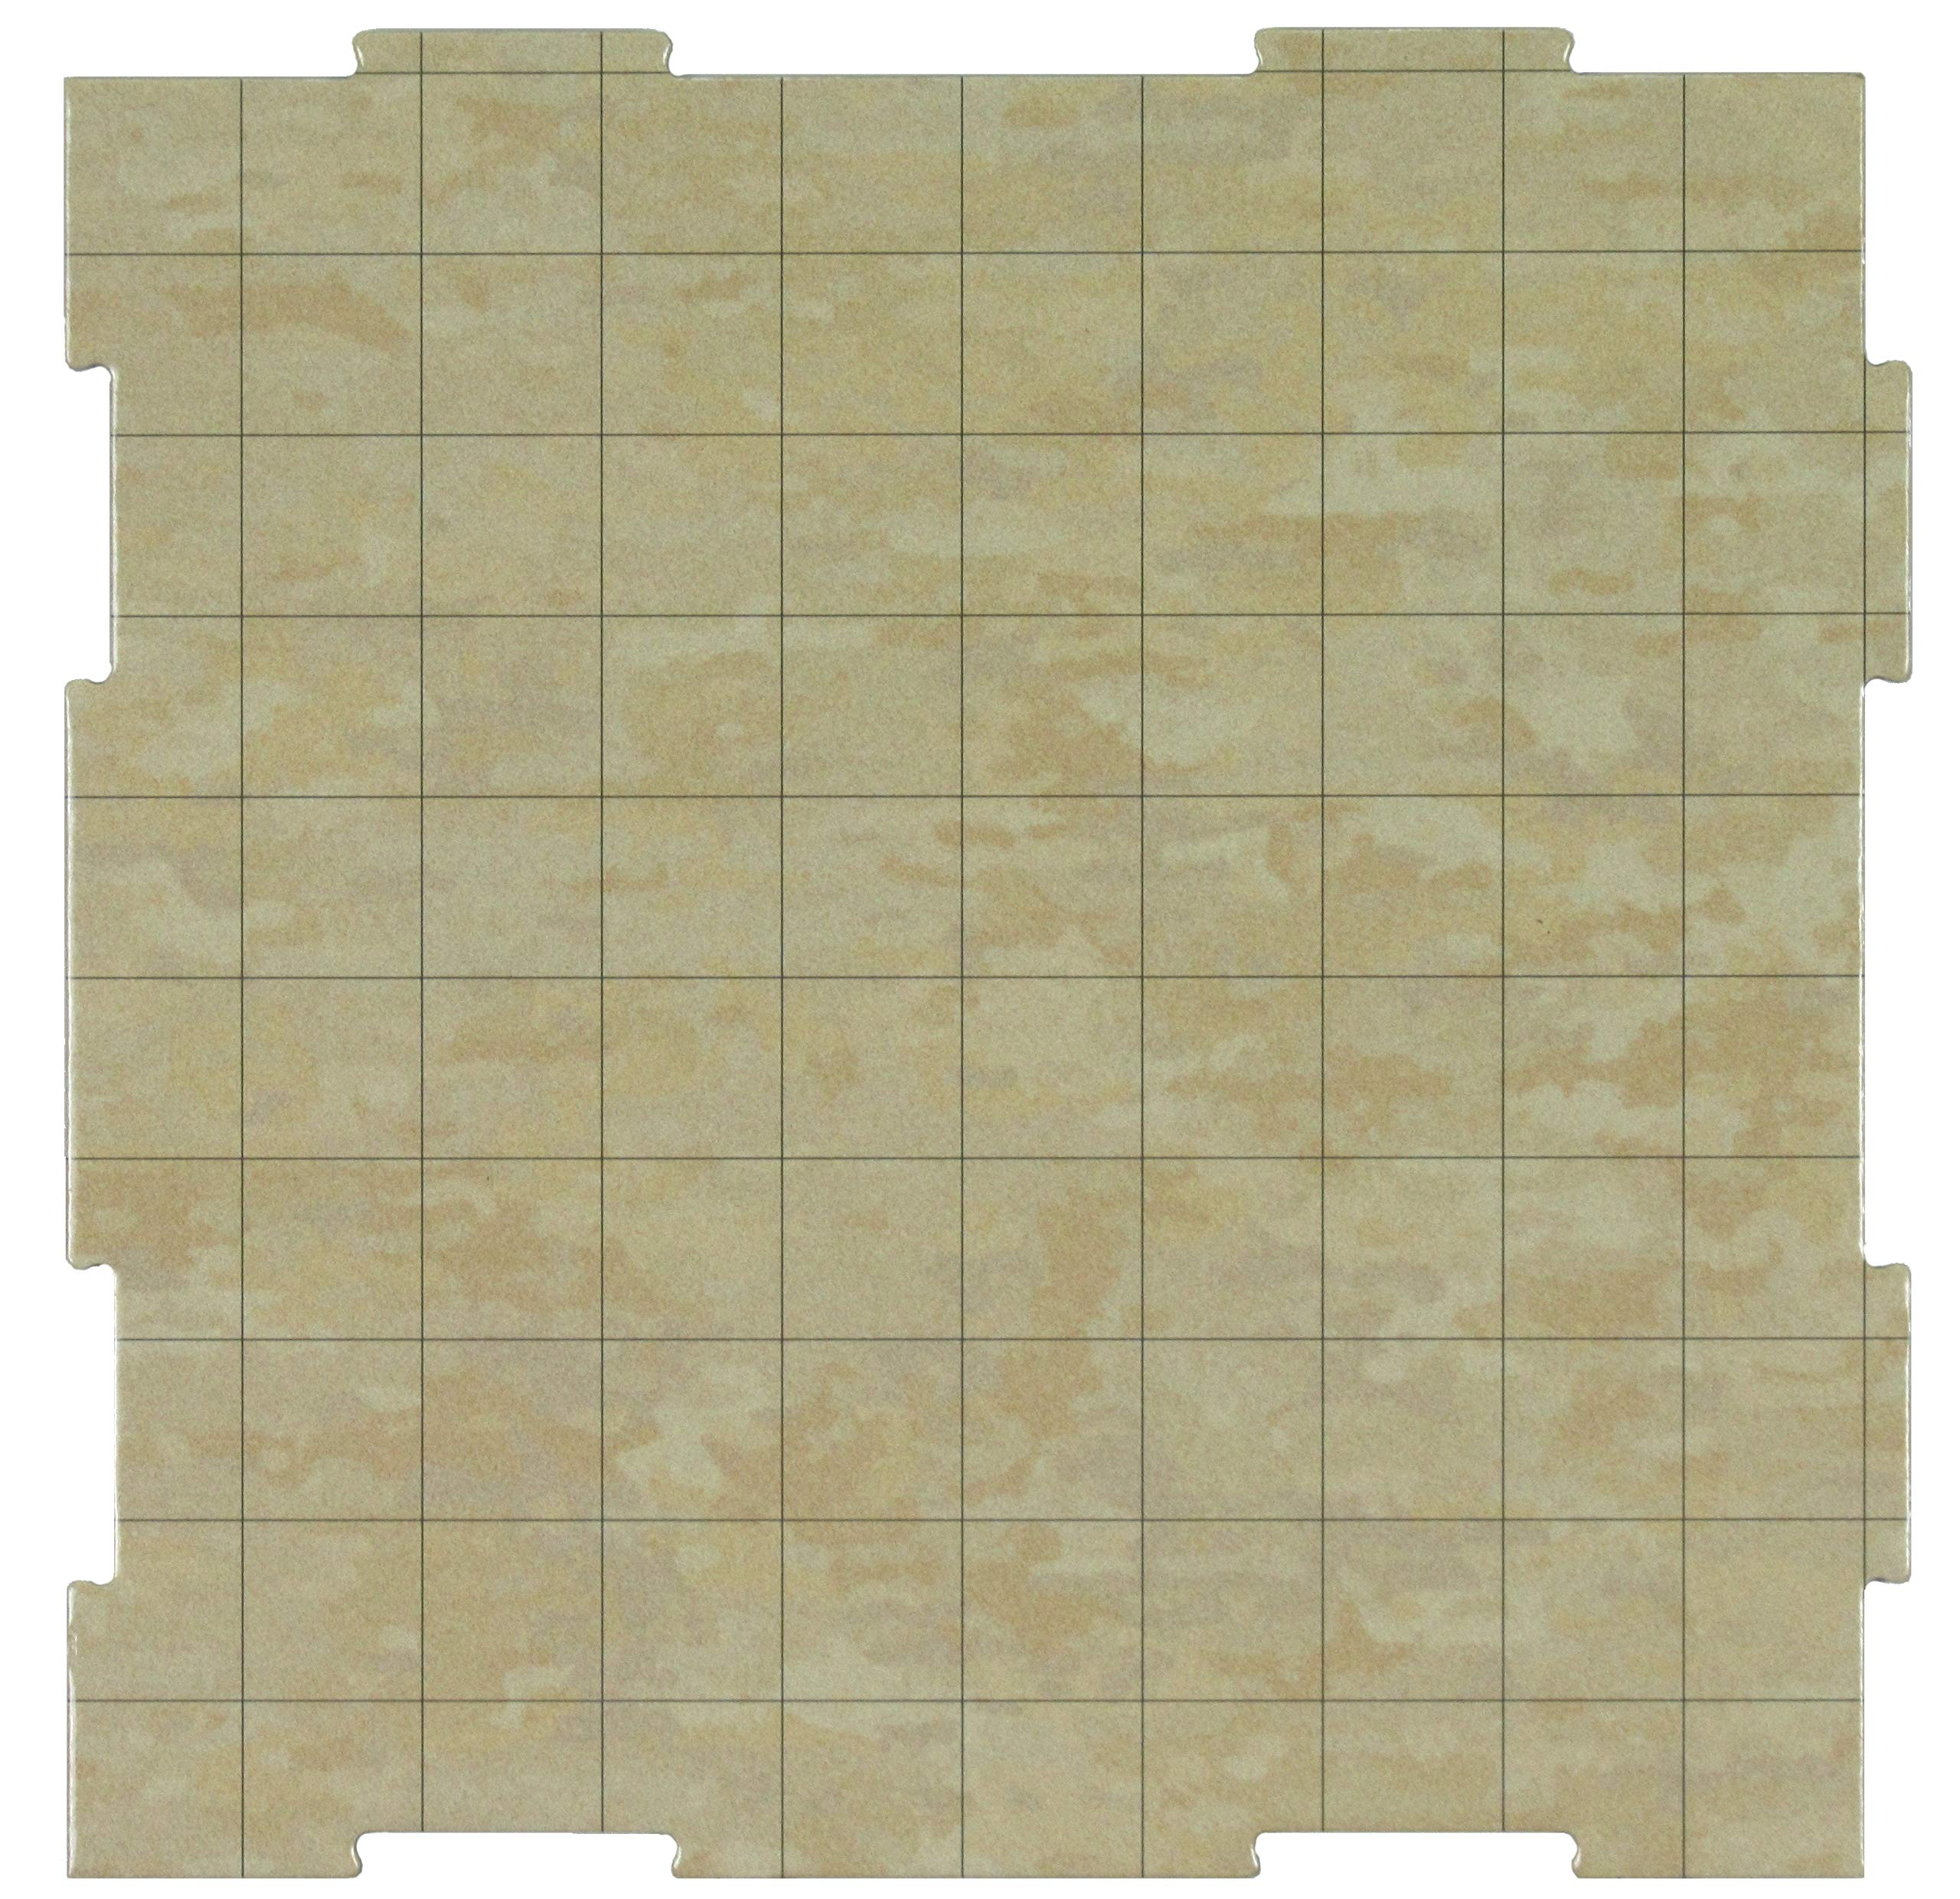 Dry Erase Dungeon Tiles, Earthtone, Set of Nine 10'' Interlocking Squares for Role-Playing and Miniature Tabletop Games